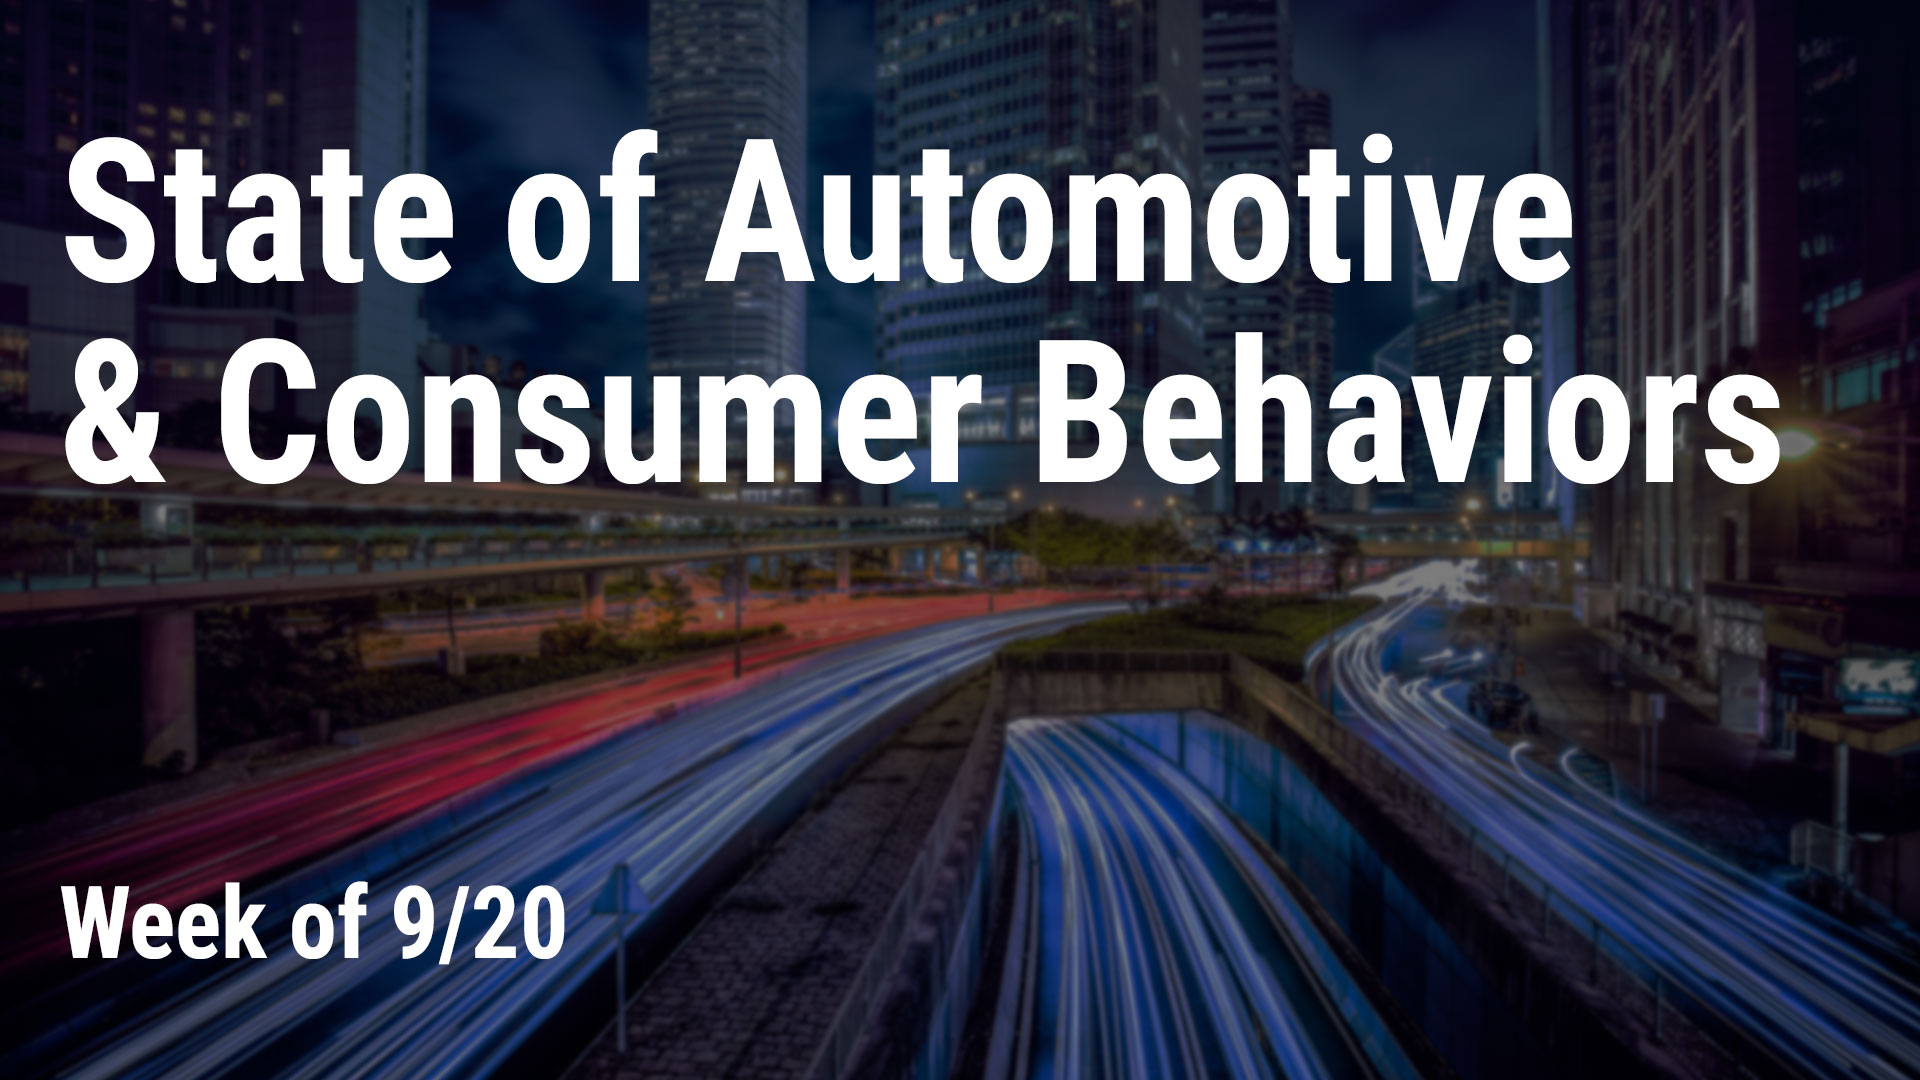 State of Automotive & Consumer Behaviors, week of 9/20